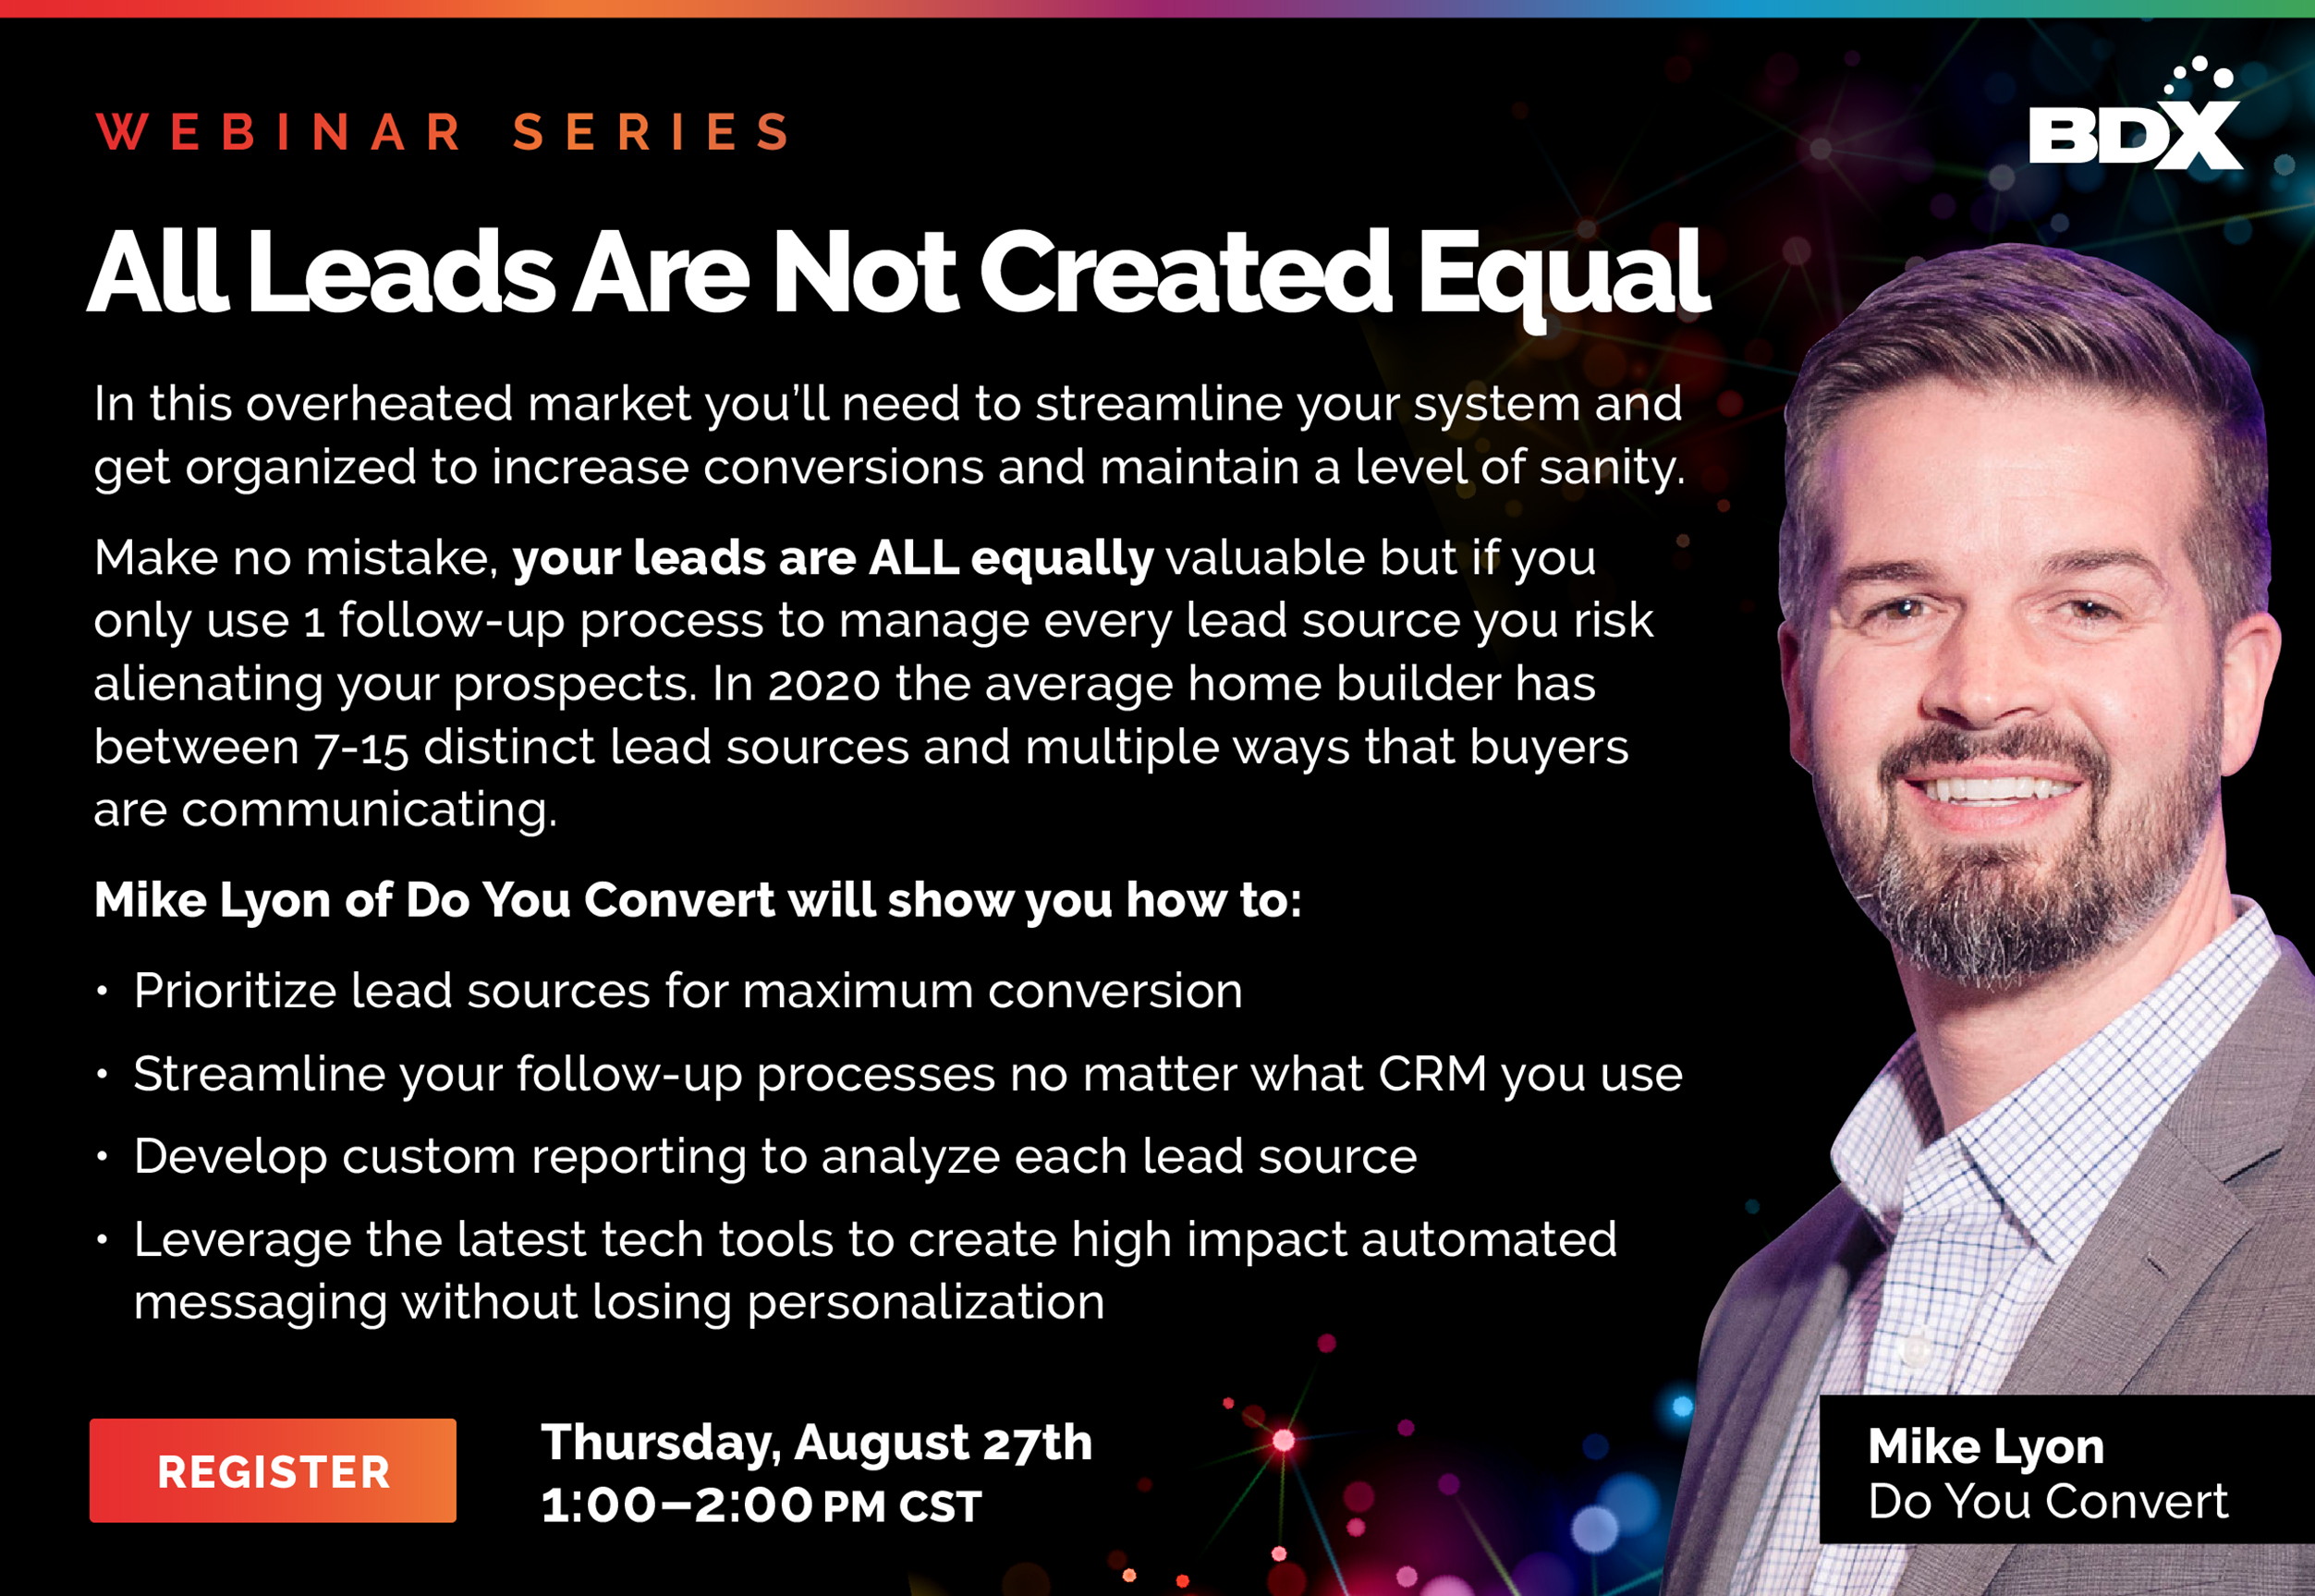 Mike Lyon Discusses Best Practices On How To Manage and Convert Any Type Of Lead Lead